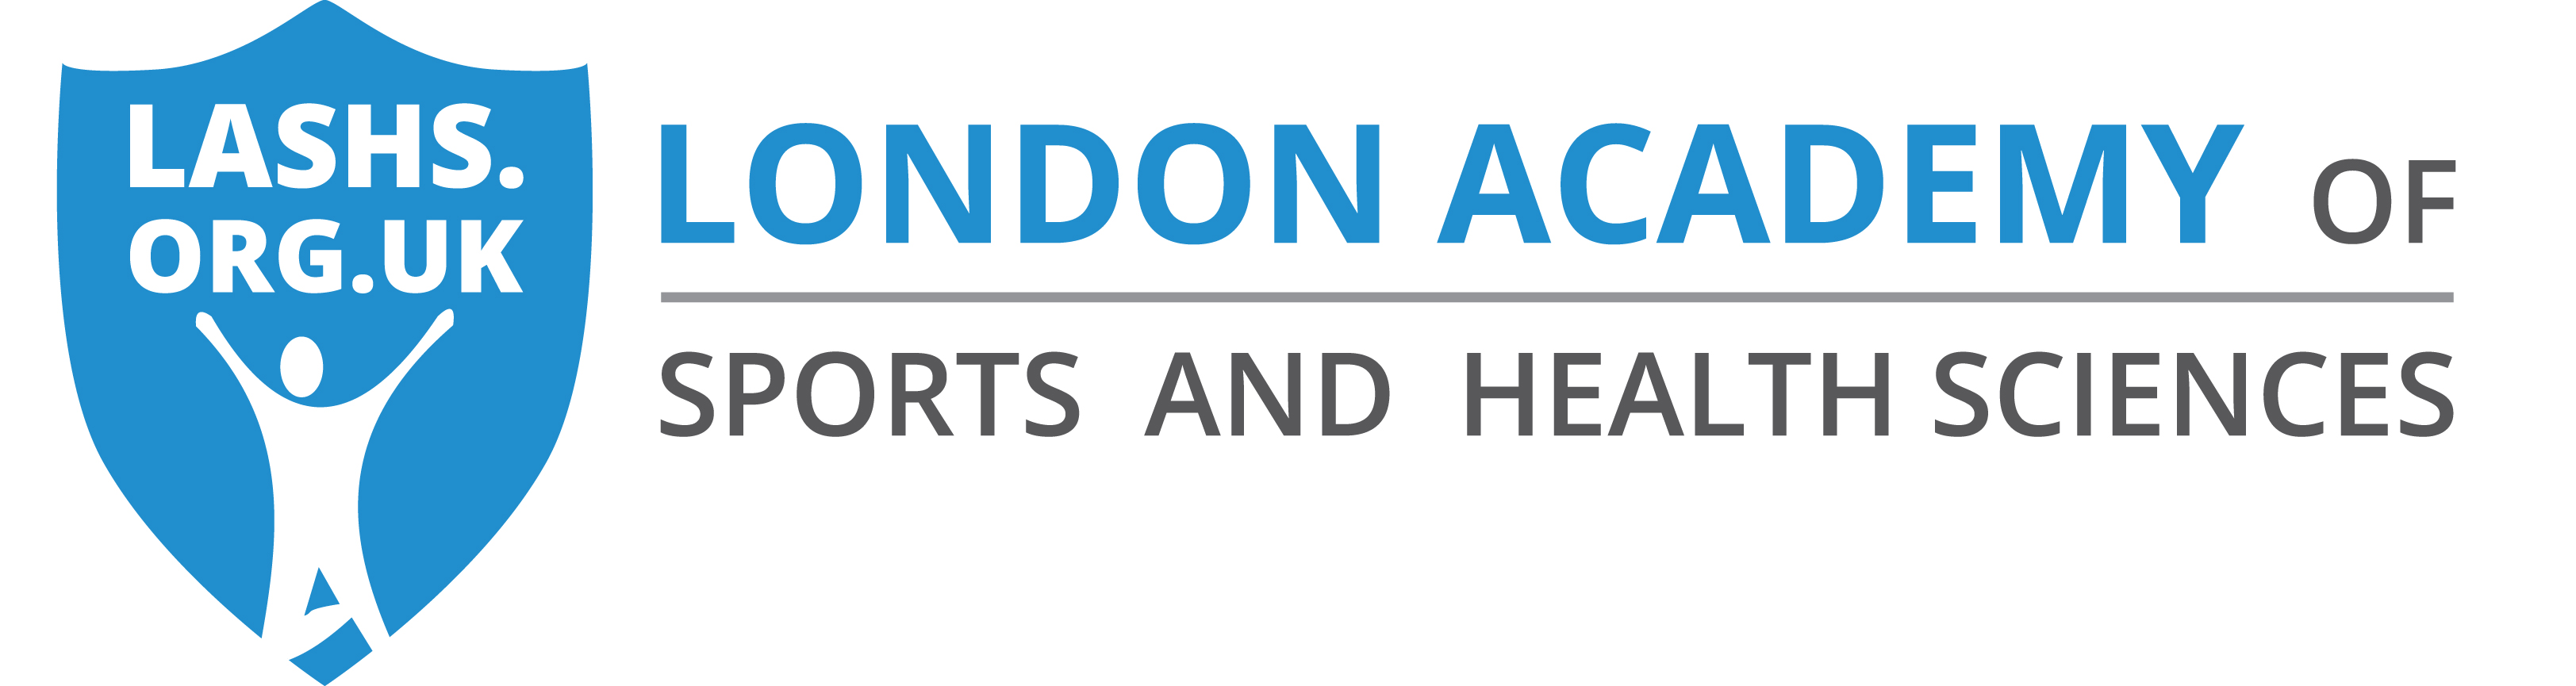 London Academy of Sports and Health Sciences (LASHS)  Photo